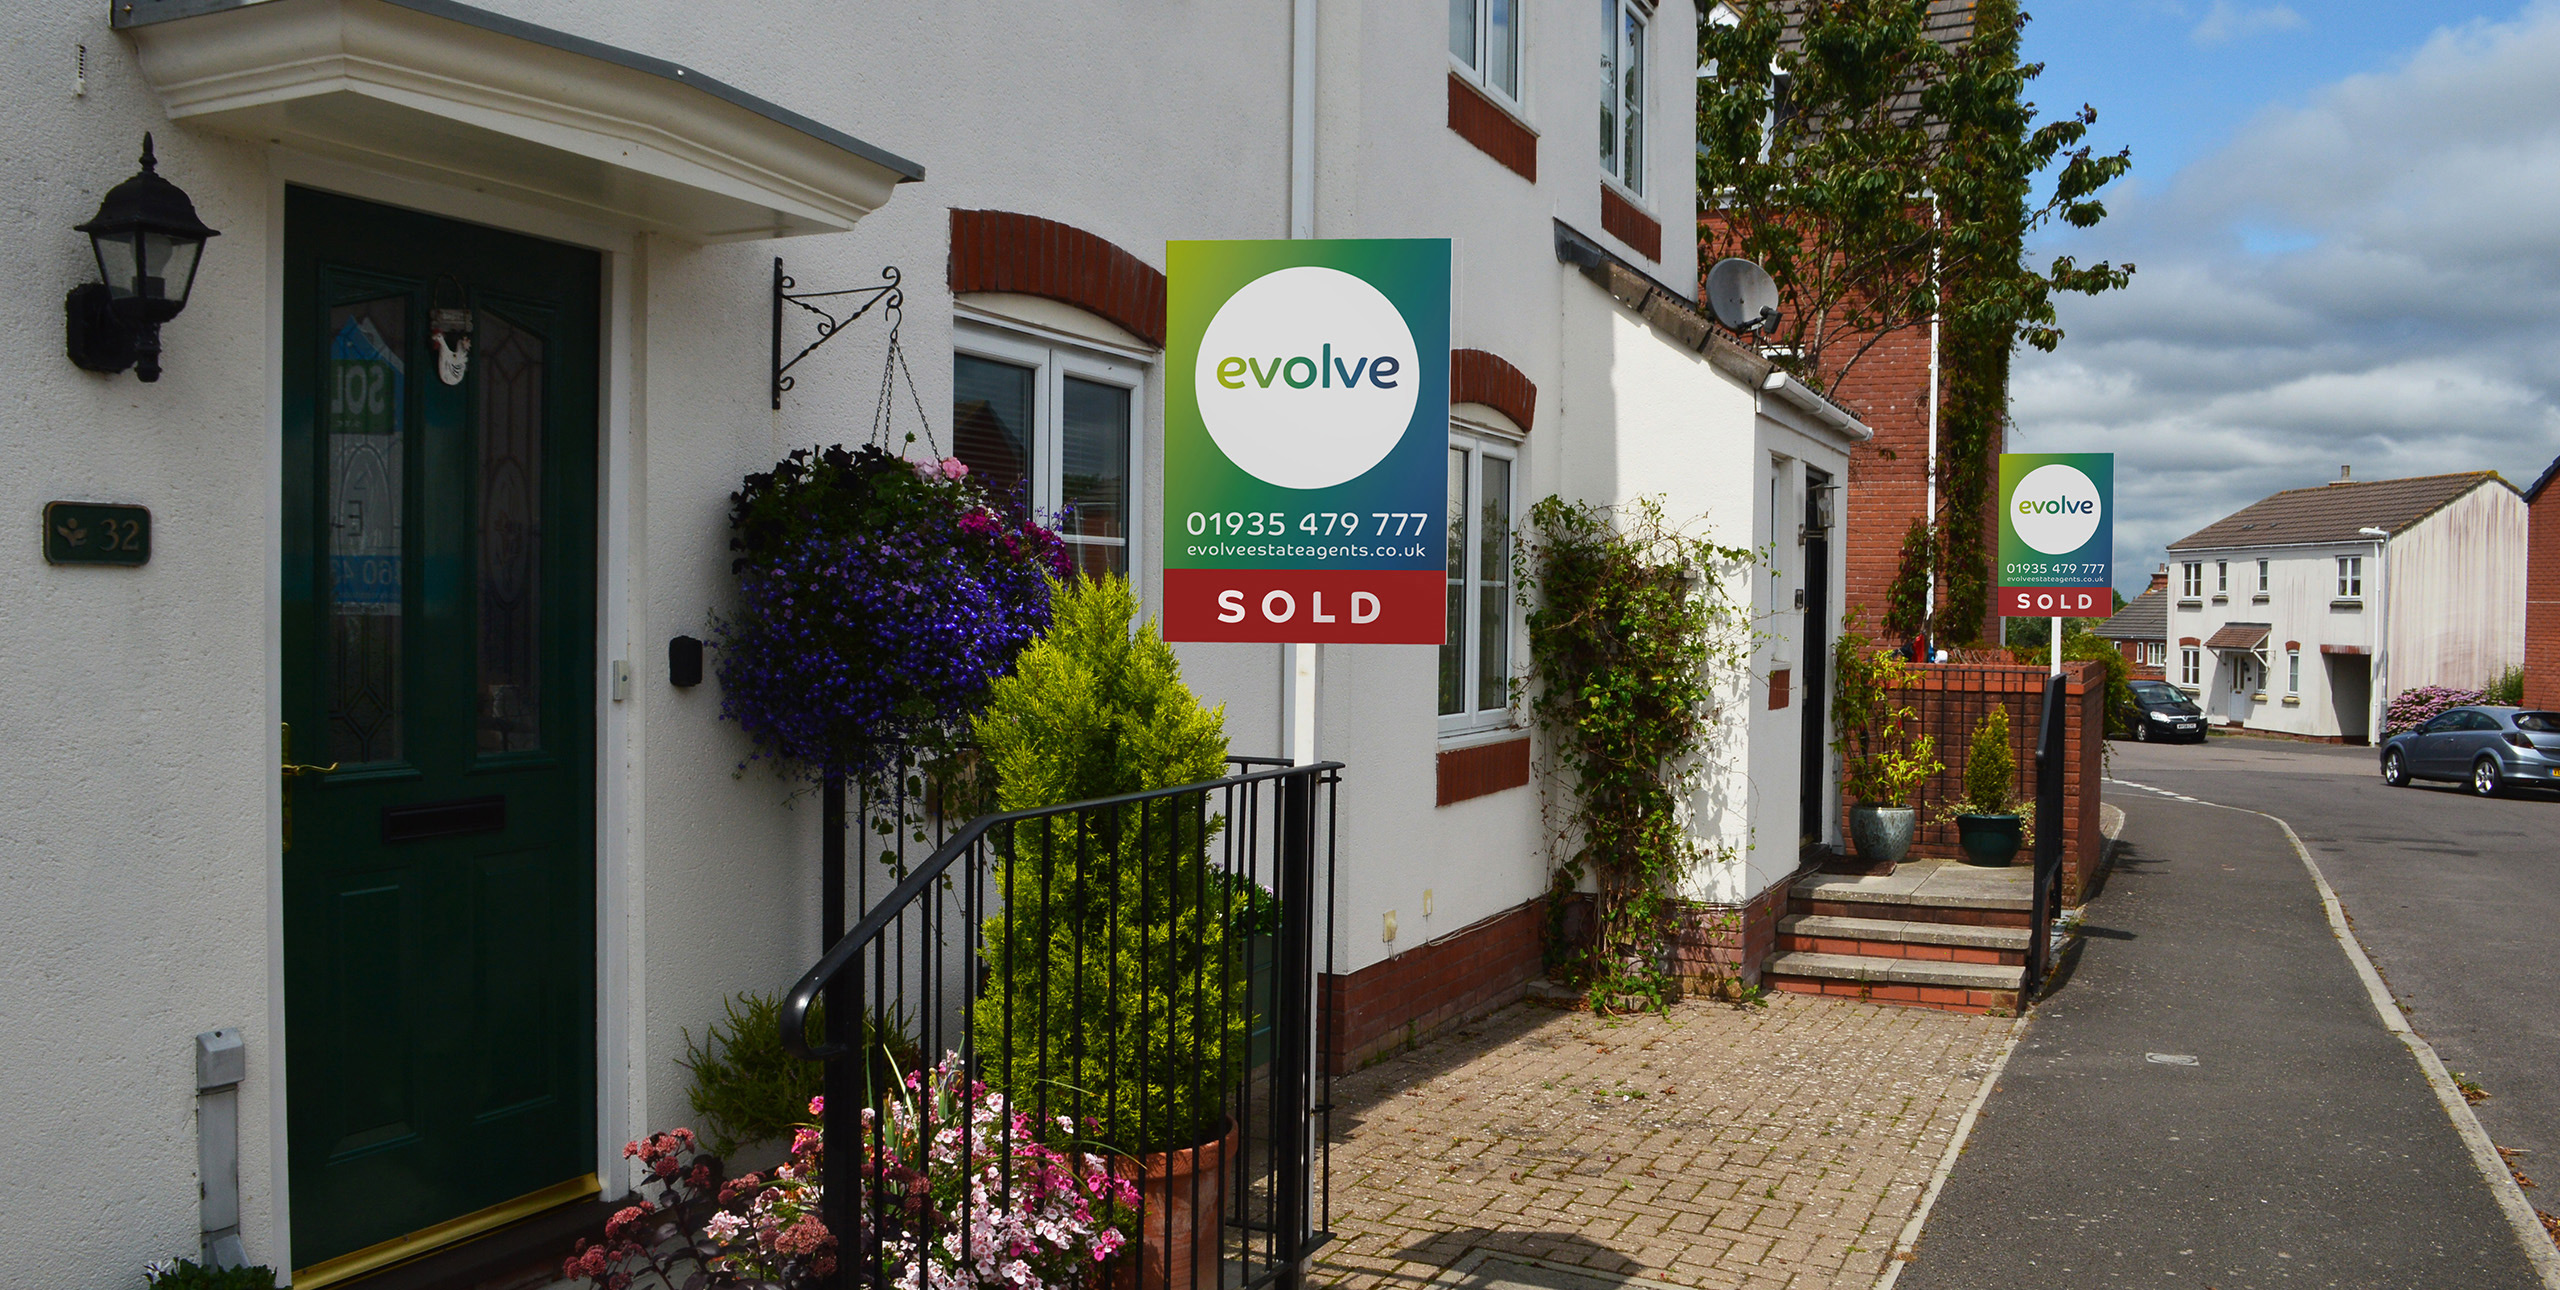 Evolve estate agents - For sale boards